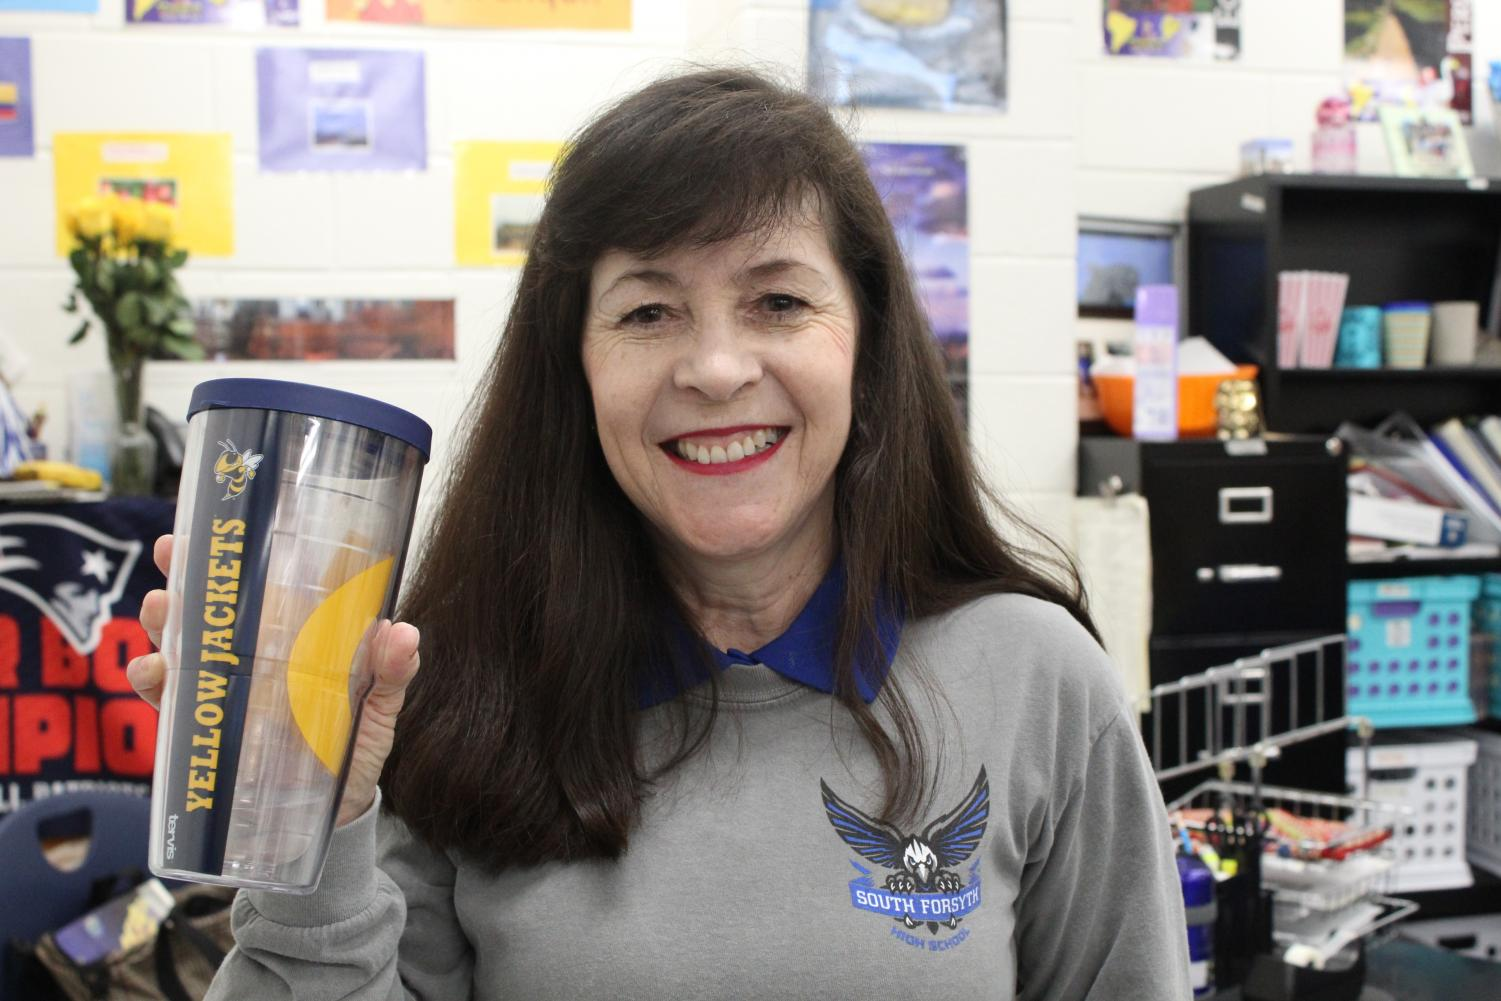 Georgia Tech. Doctora Green representing her Georgia Tech mug after her student got an early acceptance into the college. She always had a special place in her heart for the college.